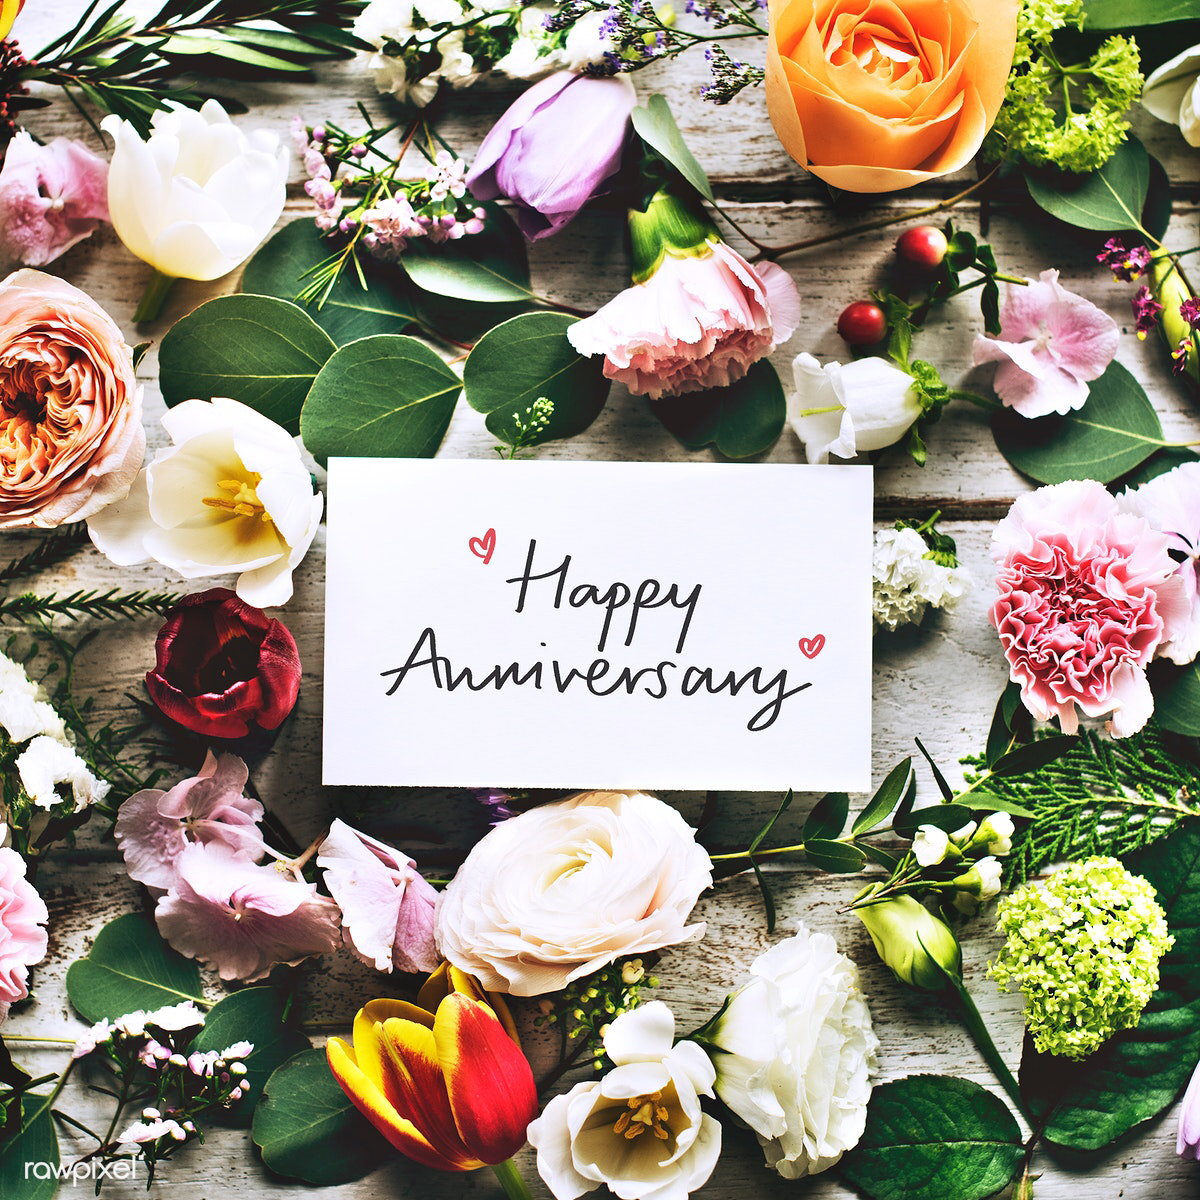 Download Premium Image Of Happy Anniversary Card And Flowers 426819 Happy Wedding Anniversary Cards Happy Anniversary Cards Wedding Anniversary Cards